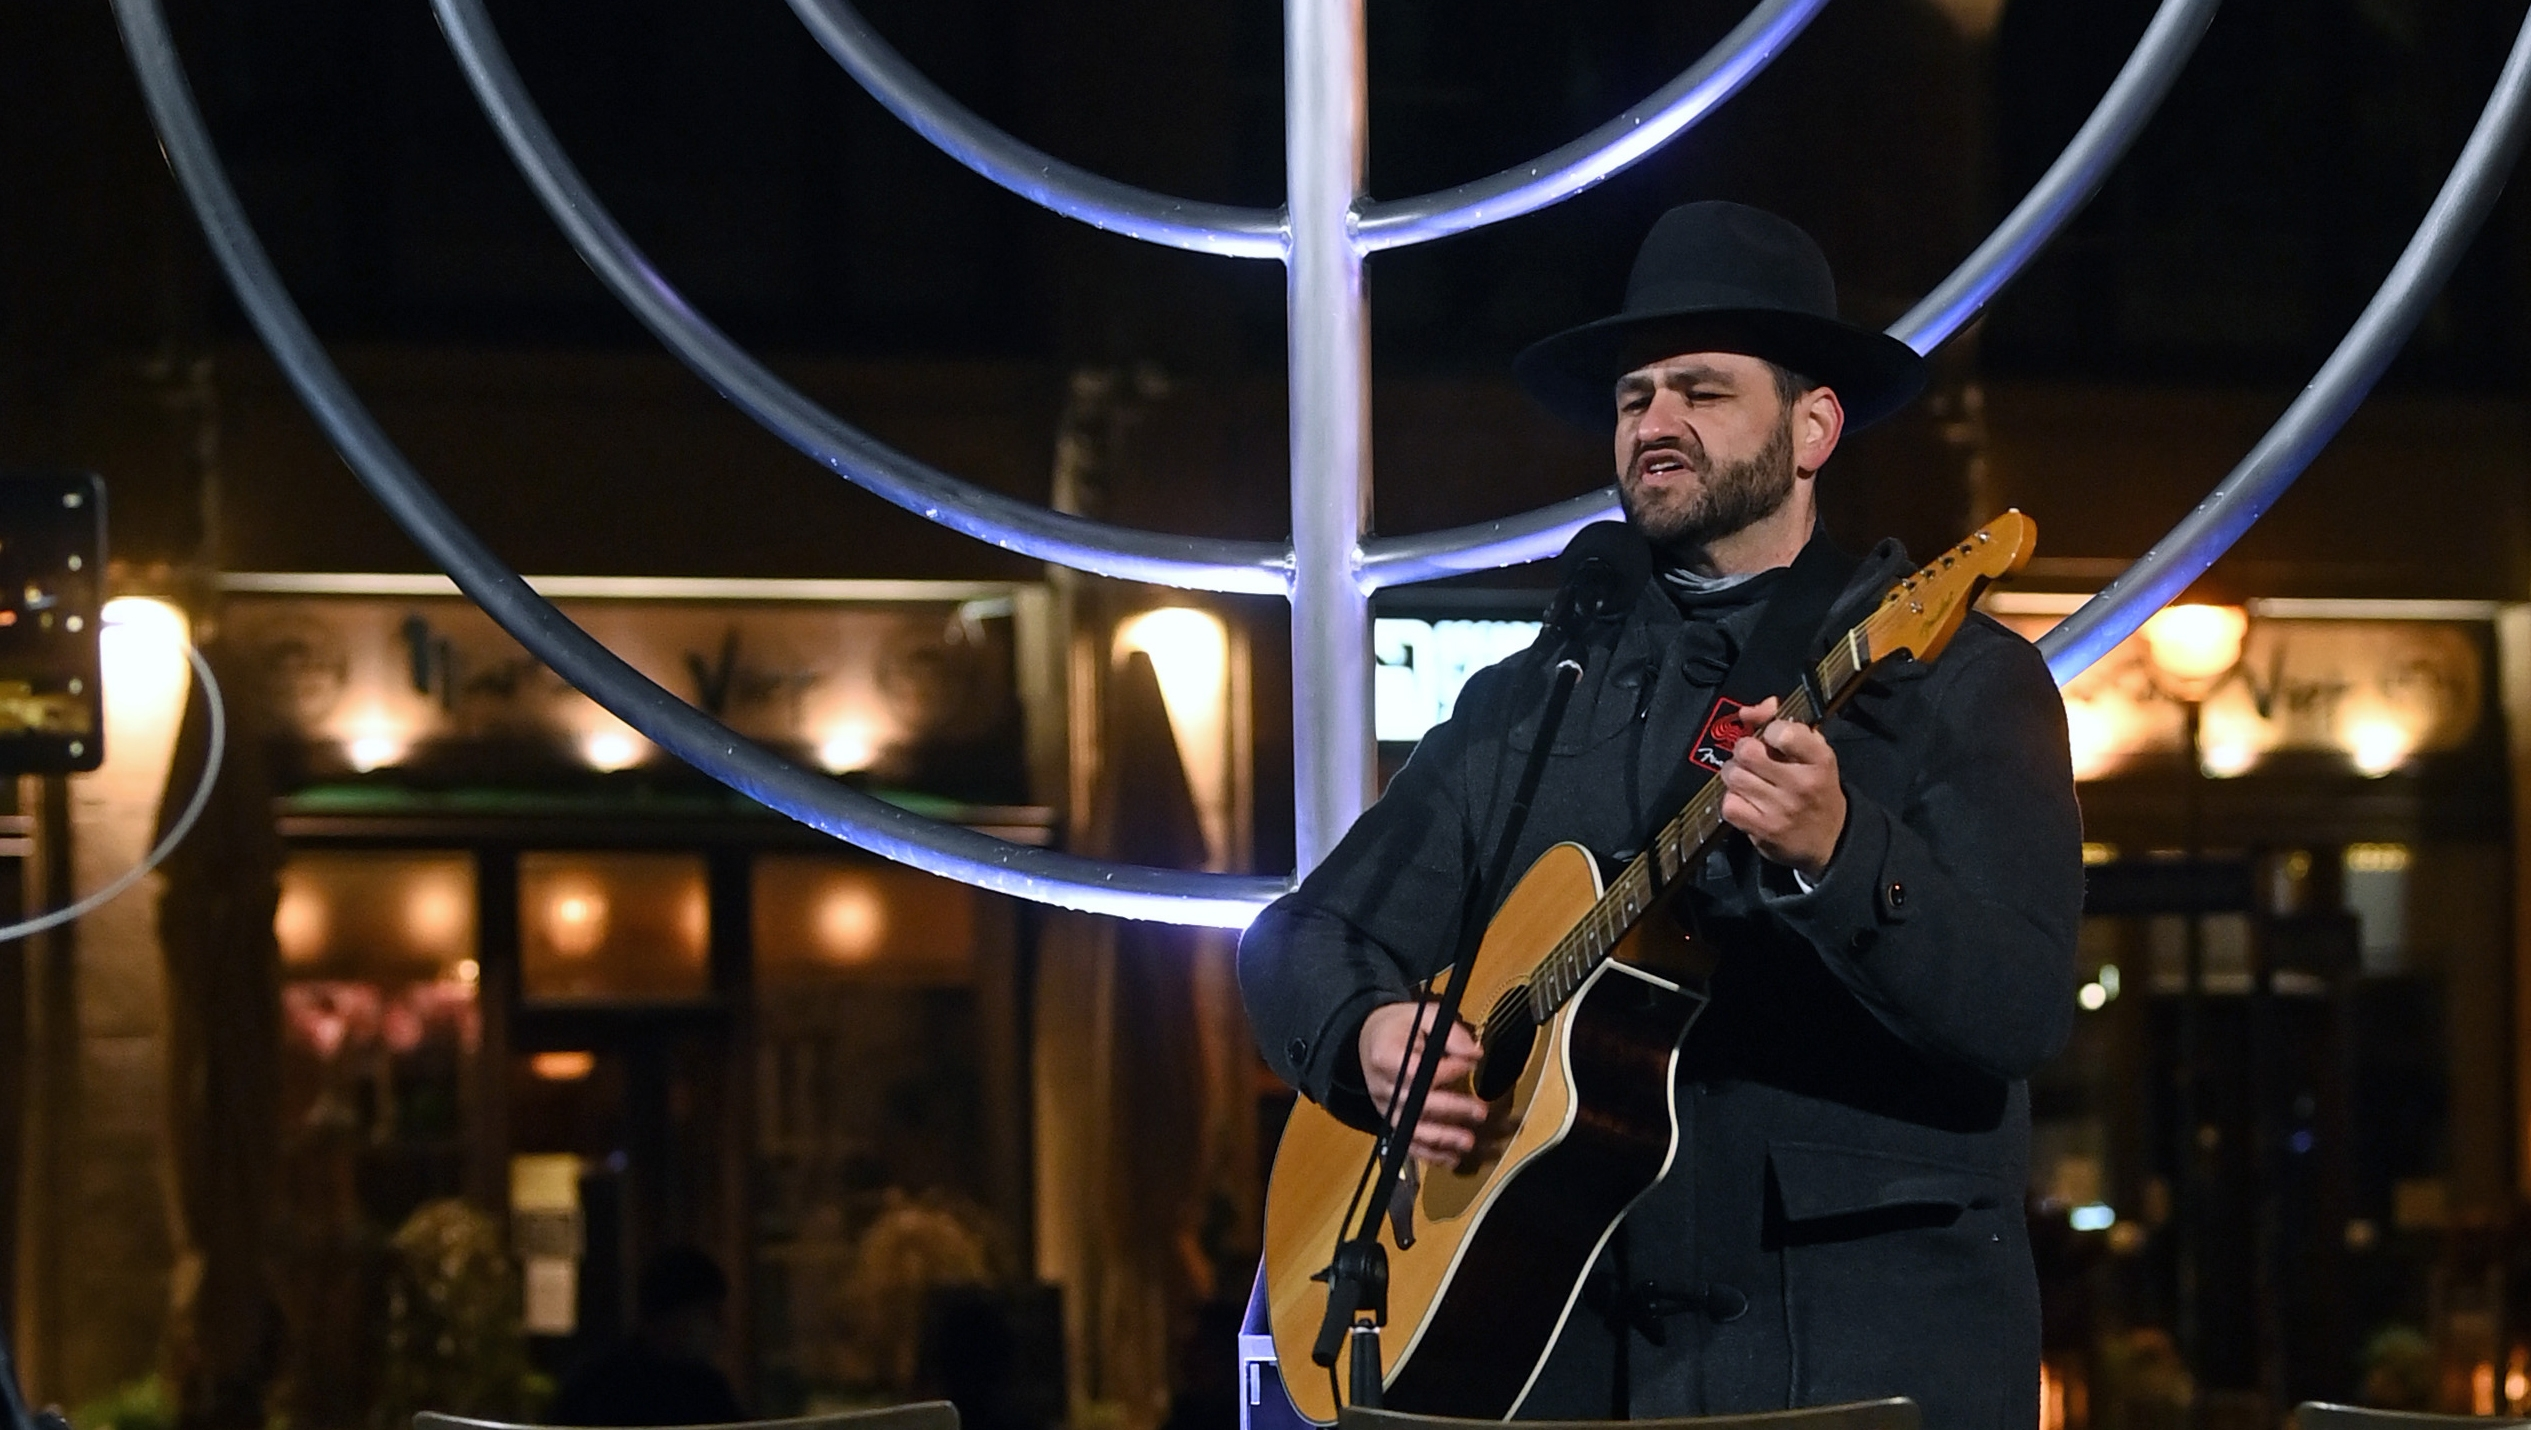 Rabbi Zsolt Balla sings at the memorial site of the former Great Synagogue of Leipzig, Germany on Dec. 10, 2020. (Hendrik Schmidt/picture alliance via Getty Images)